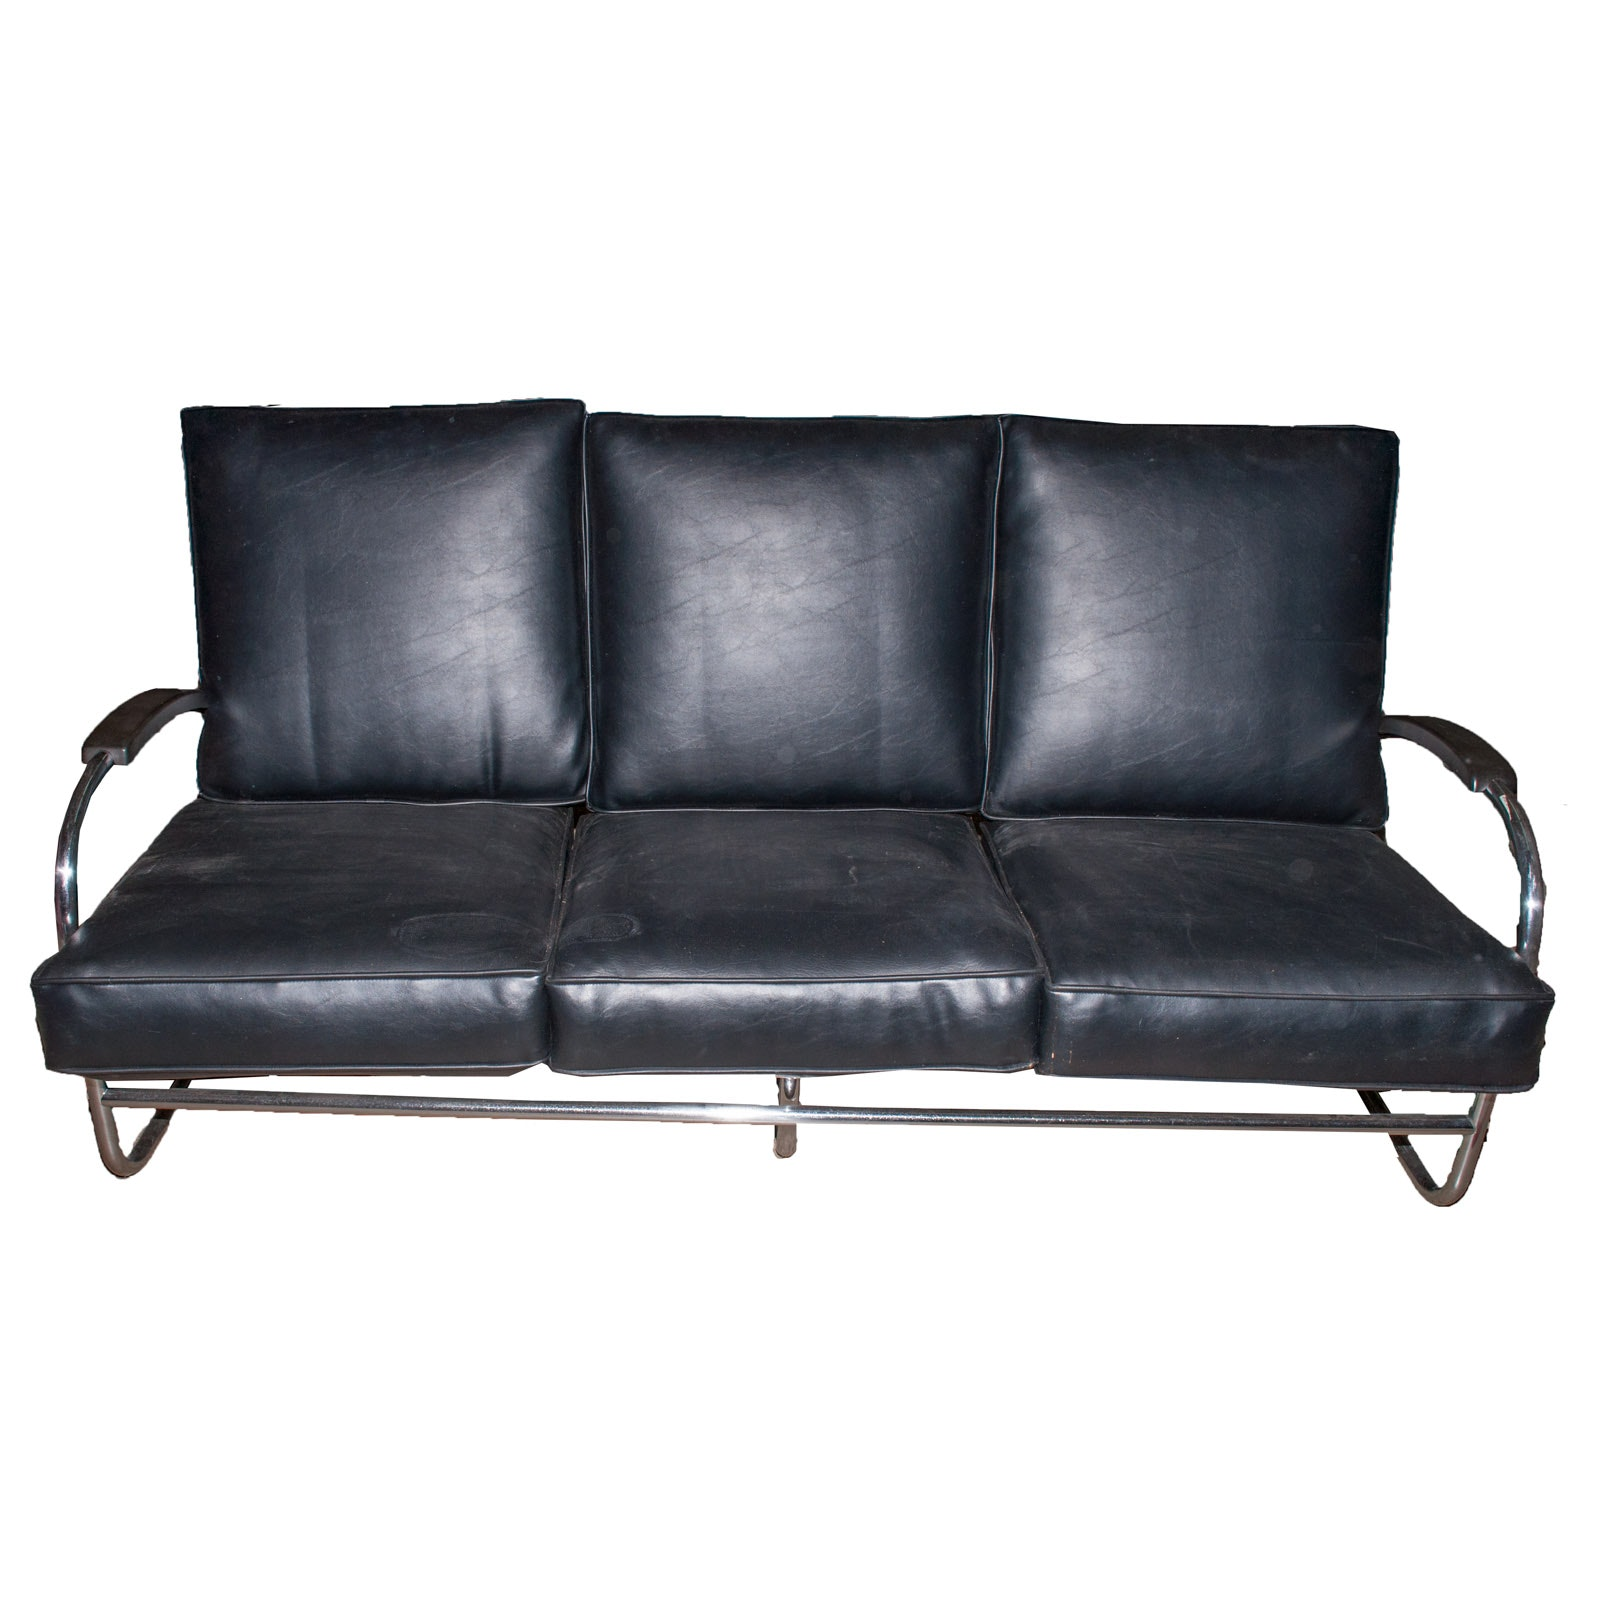 Vintage Modern Italian Leather Sofa, Circa